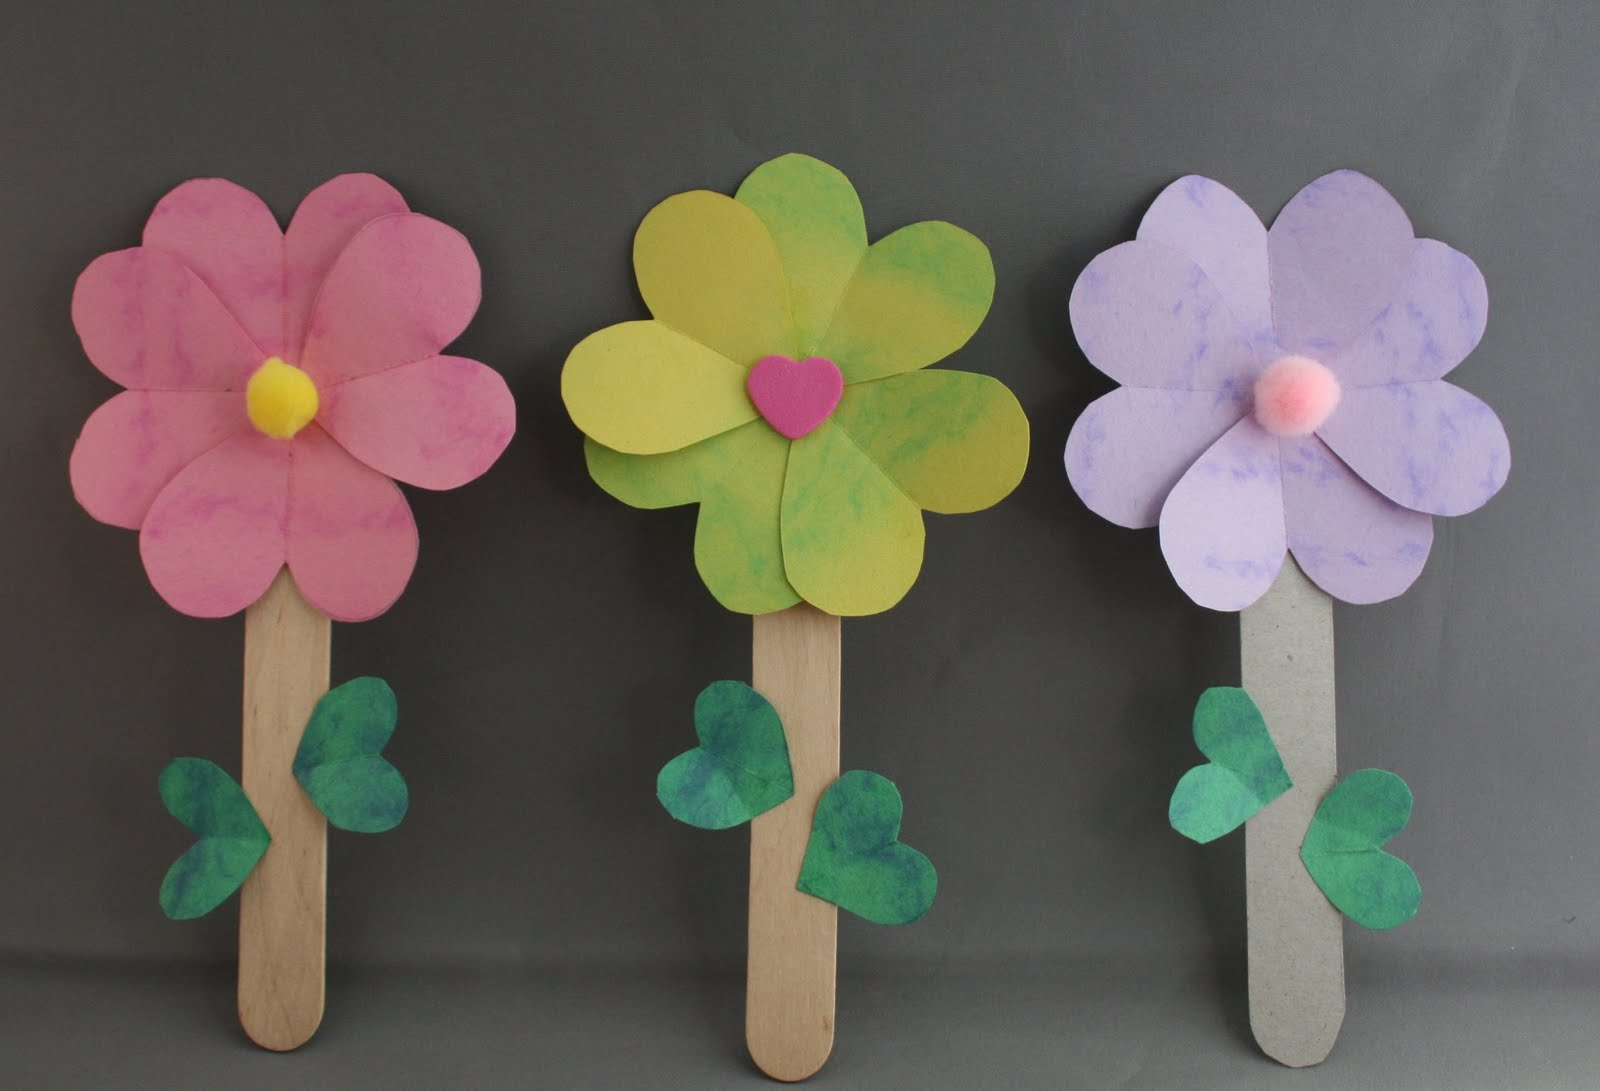 the idea for this post started with a flower project by amanda formaro